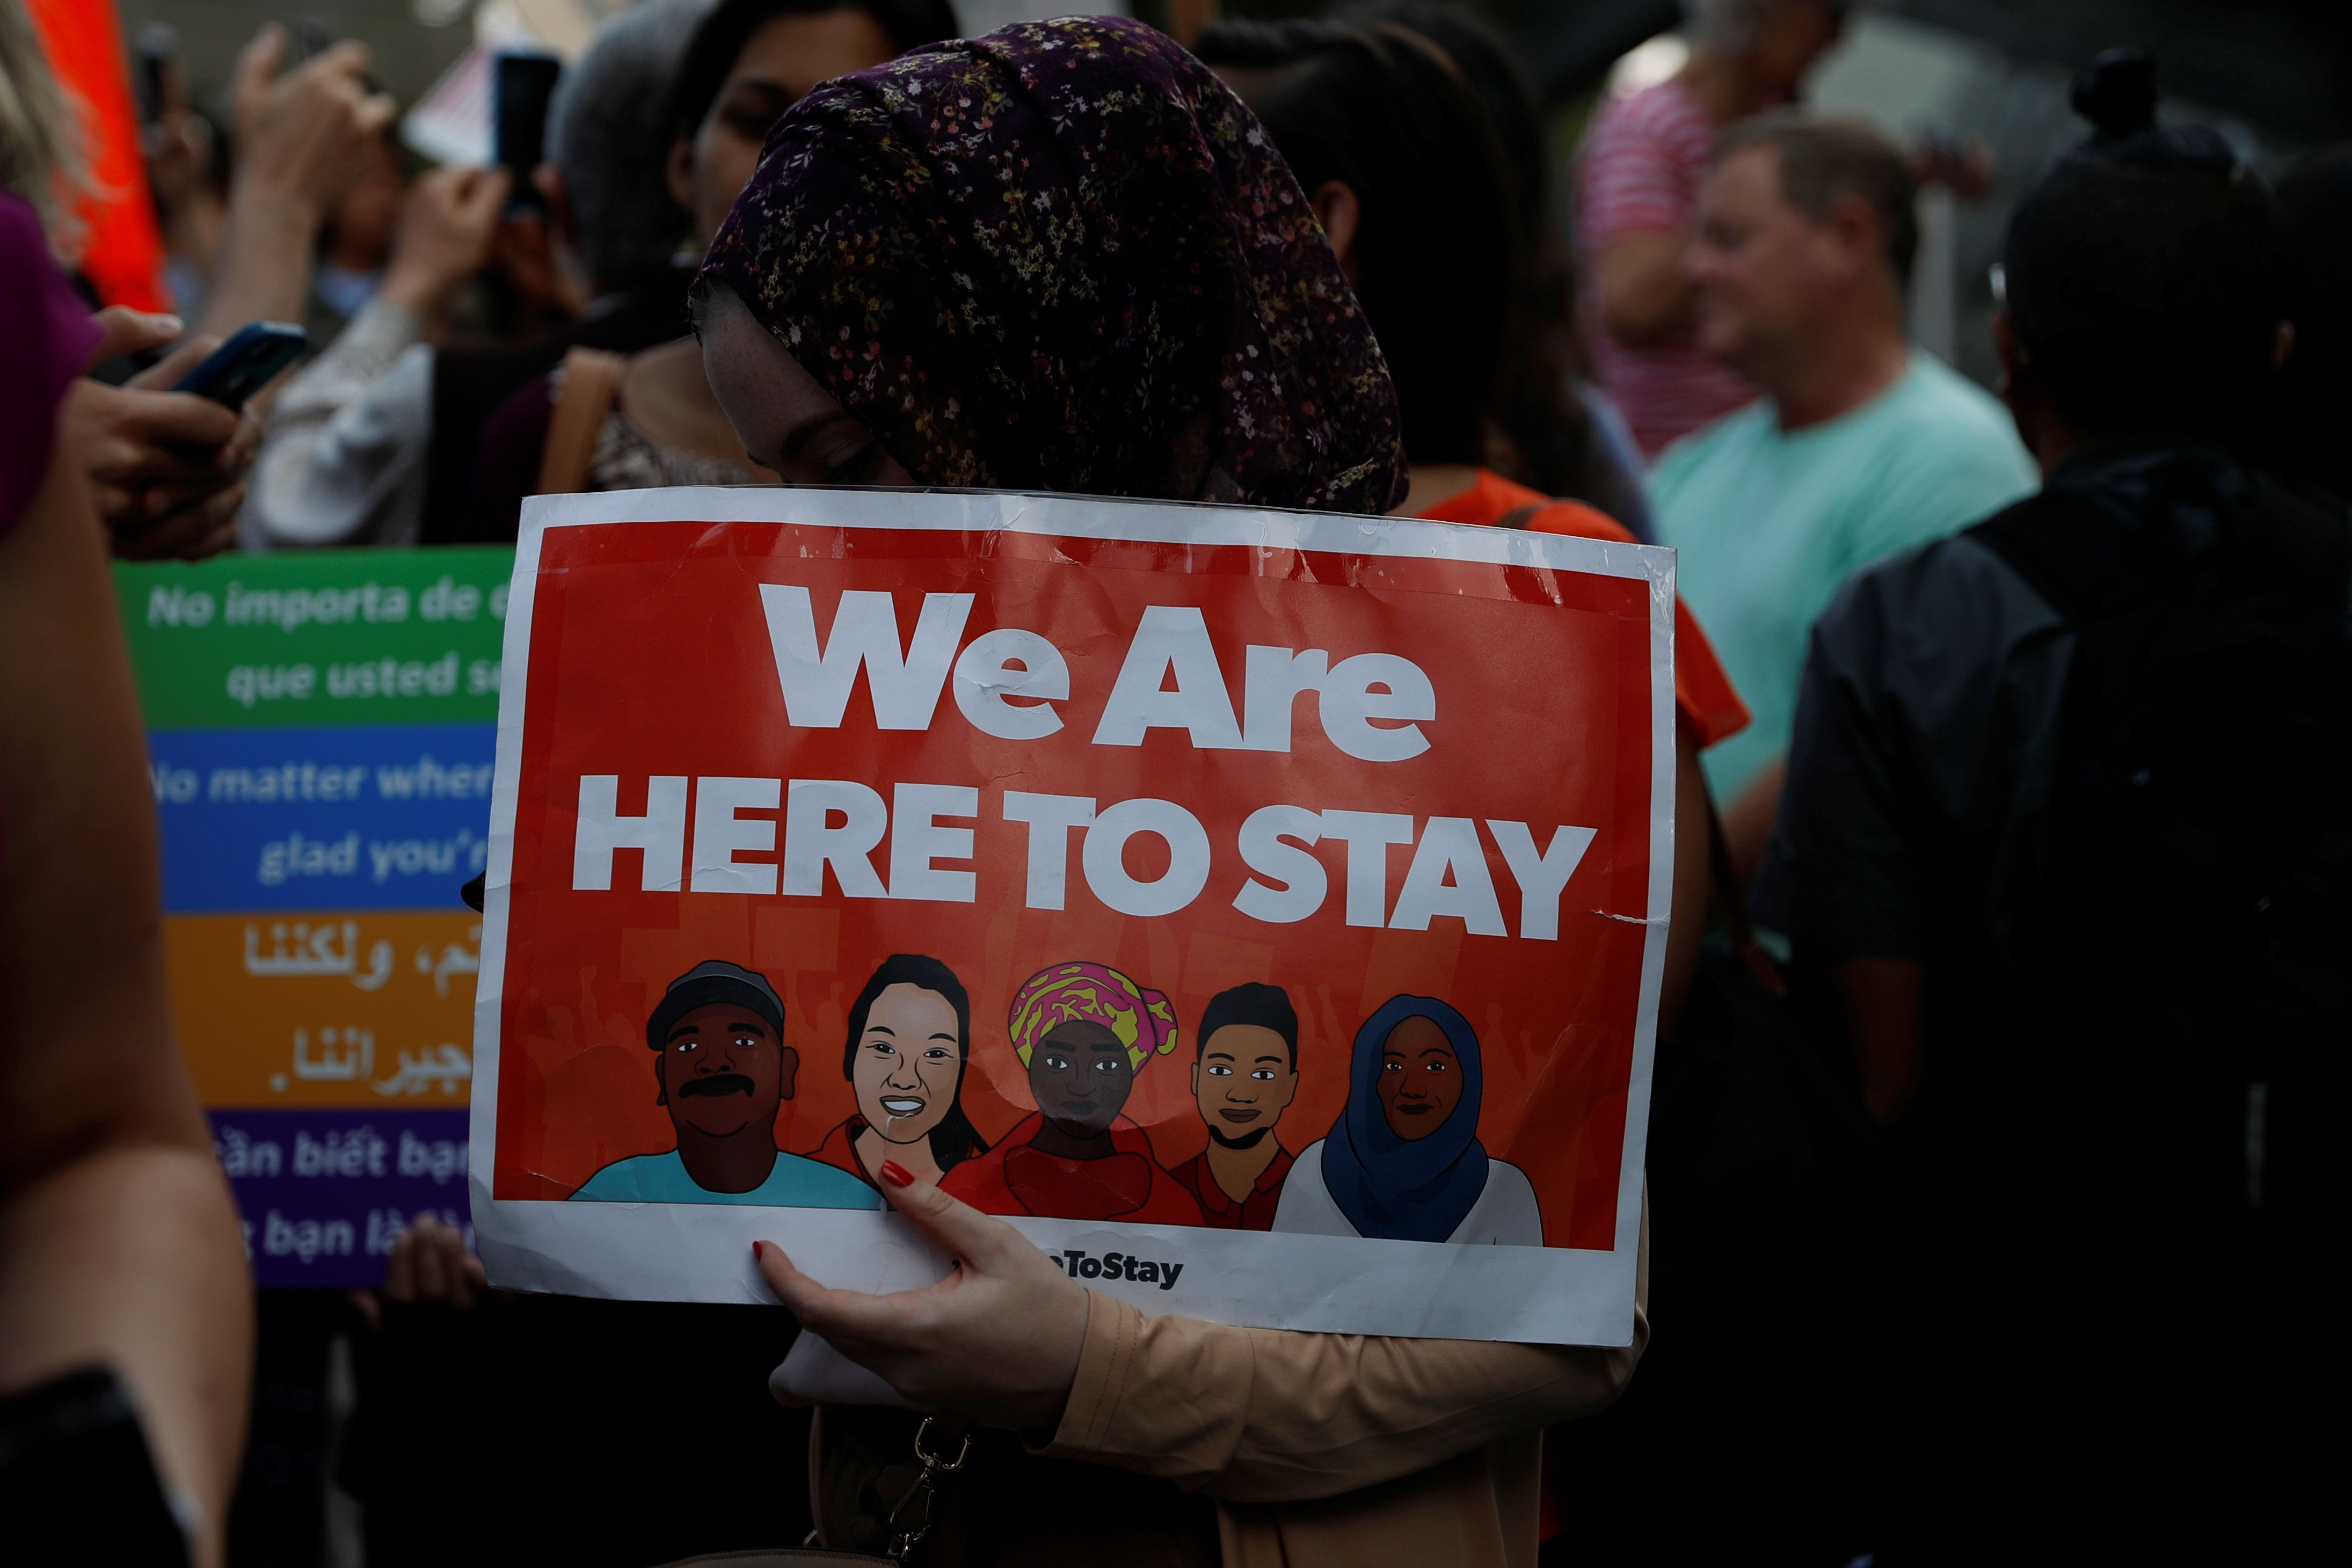 A demonstrator holds a sign during a rally against the rescindment of DACA (Deferred Action for Childhood Arrivals) program outside the San Francisco Federal Building in San Francisco, California, U.S., September 5, 2017. REUTERS/Stephen Lam